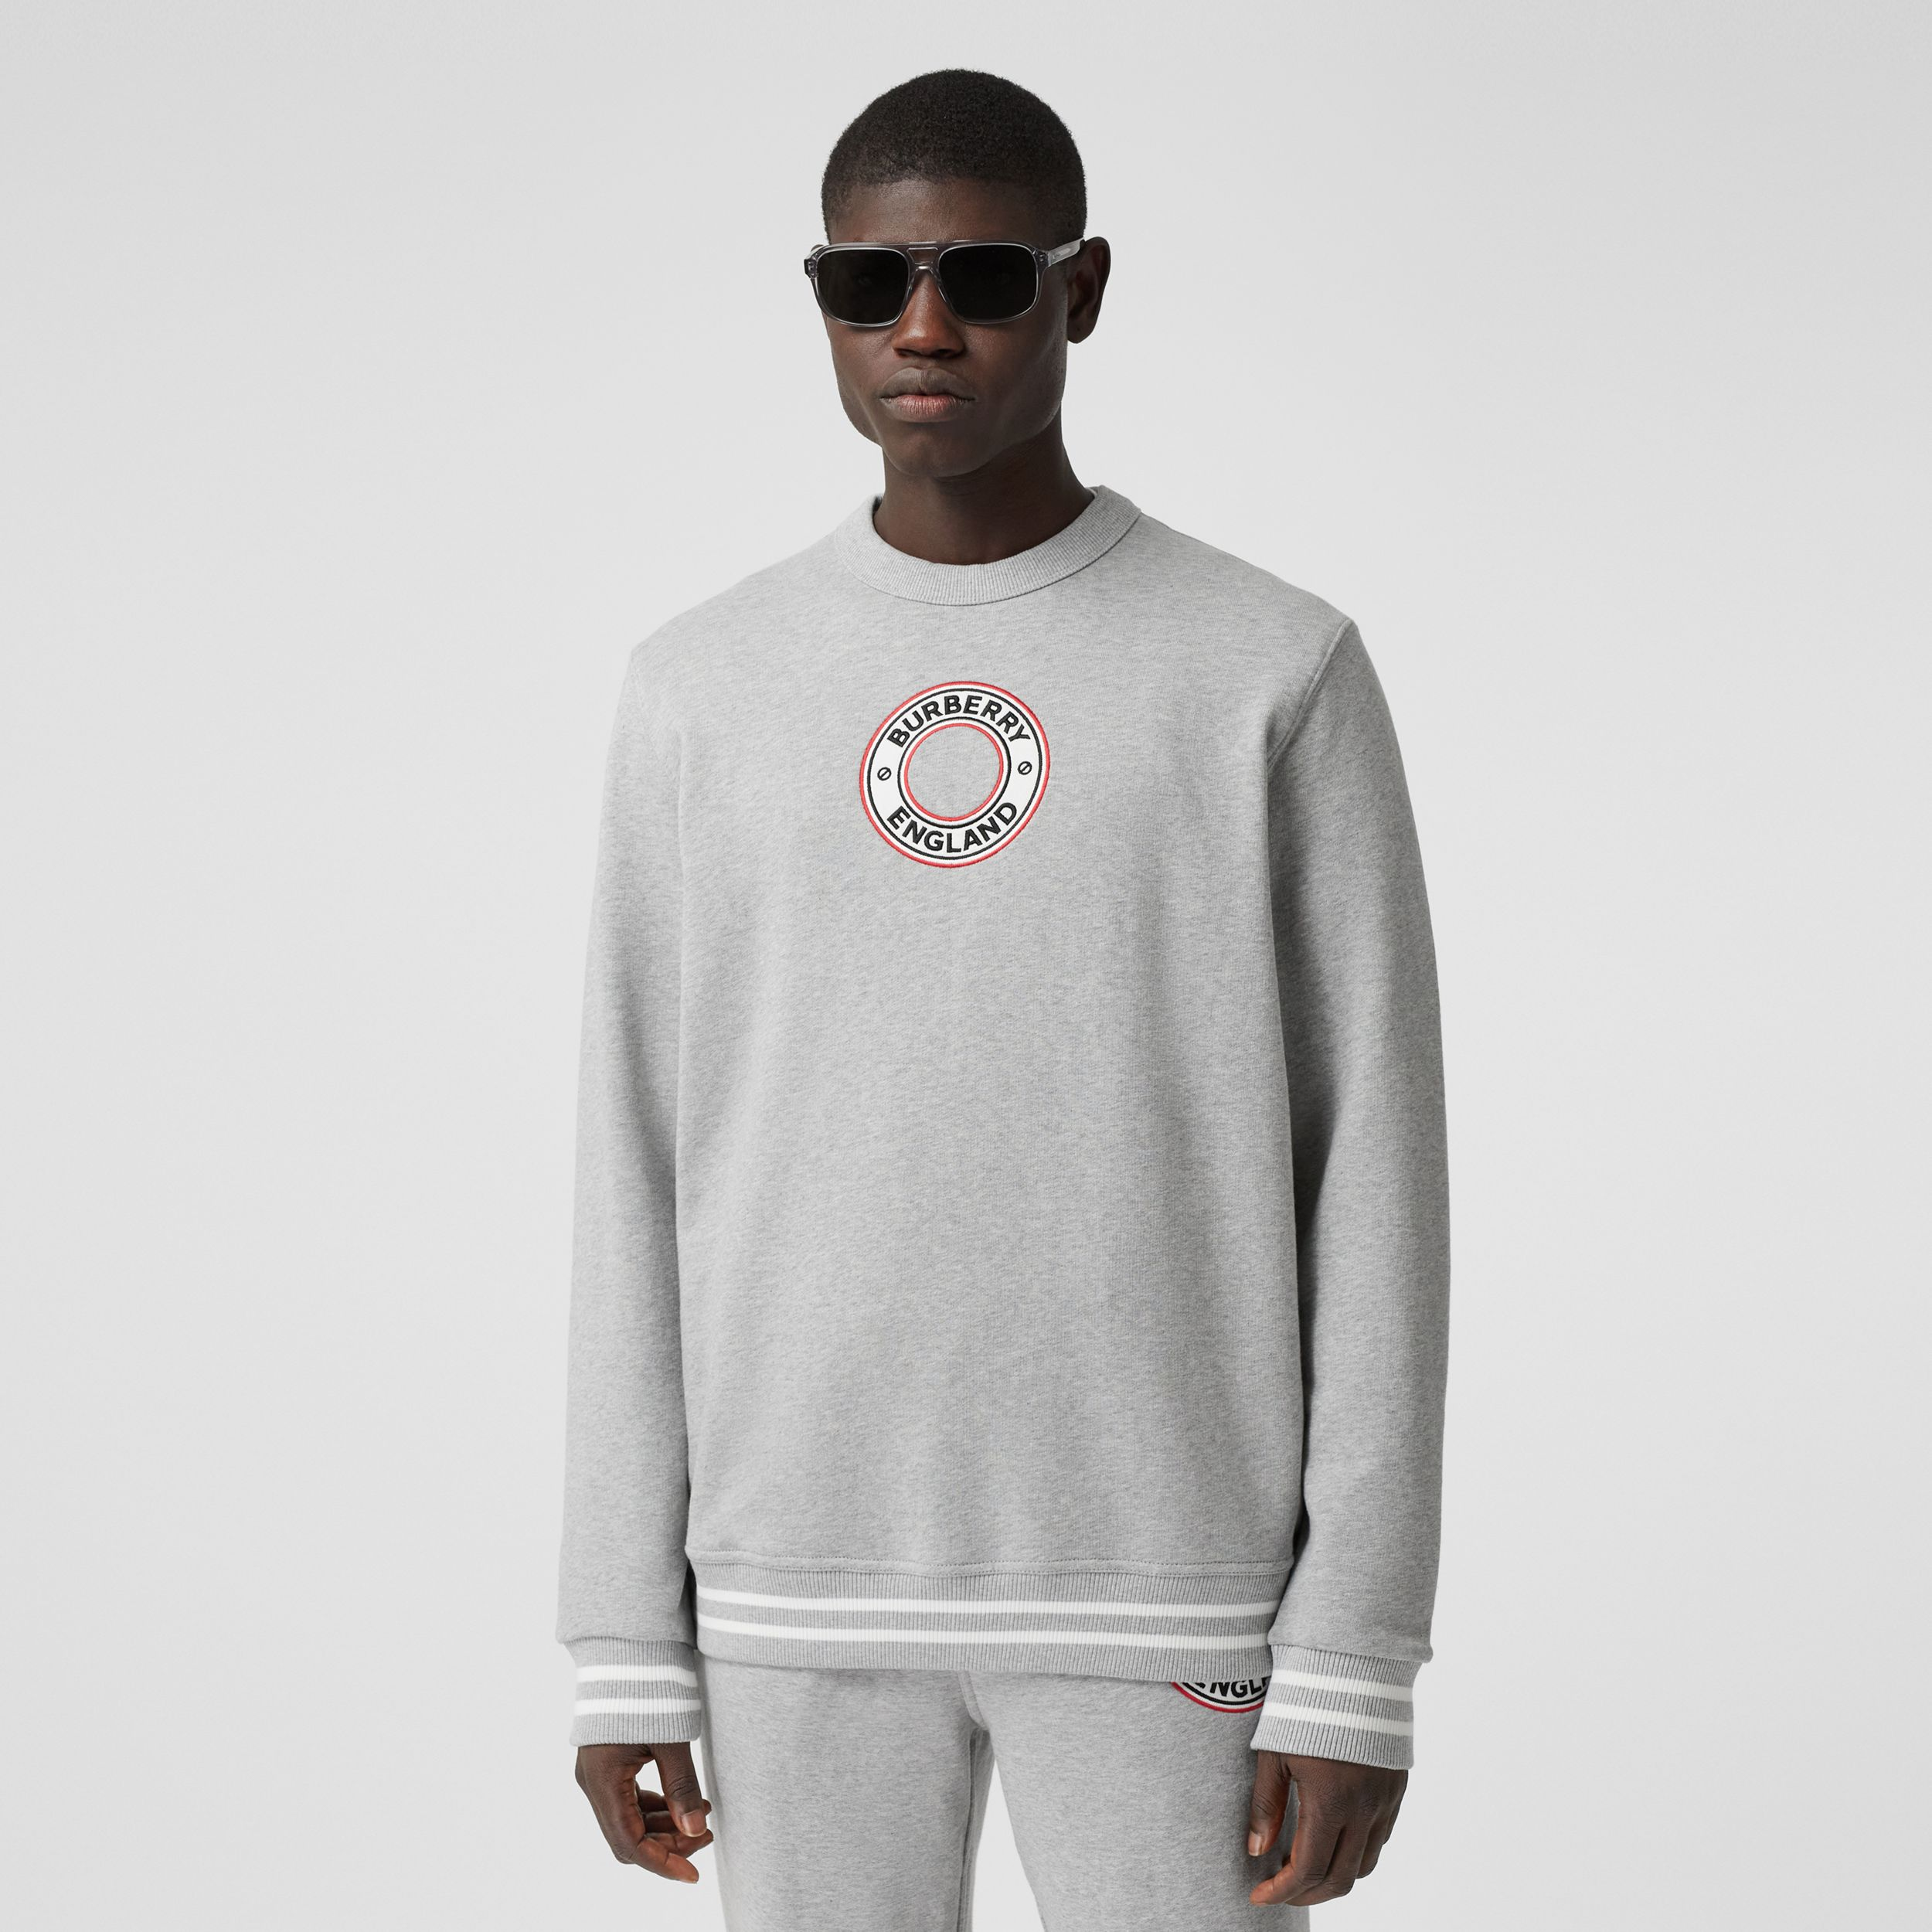 Logo Graphic Appliqué Cotton Sweatshirt in Pale Grey Melange - Men | Burberry Hong Kong S.A.R. - 1